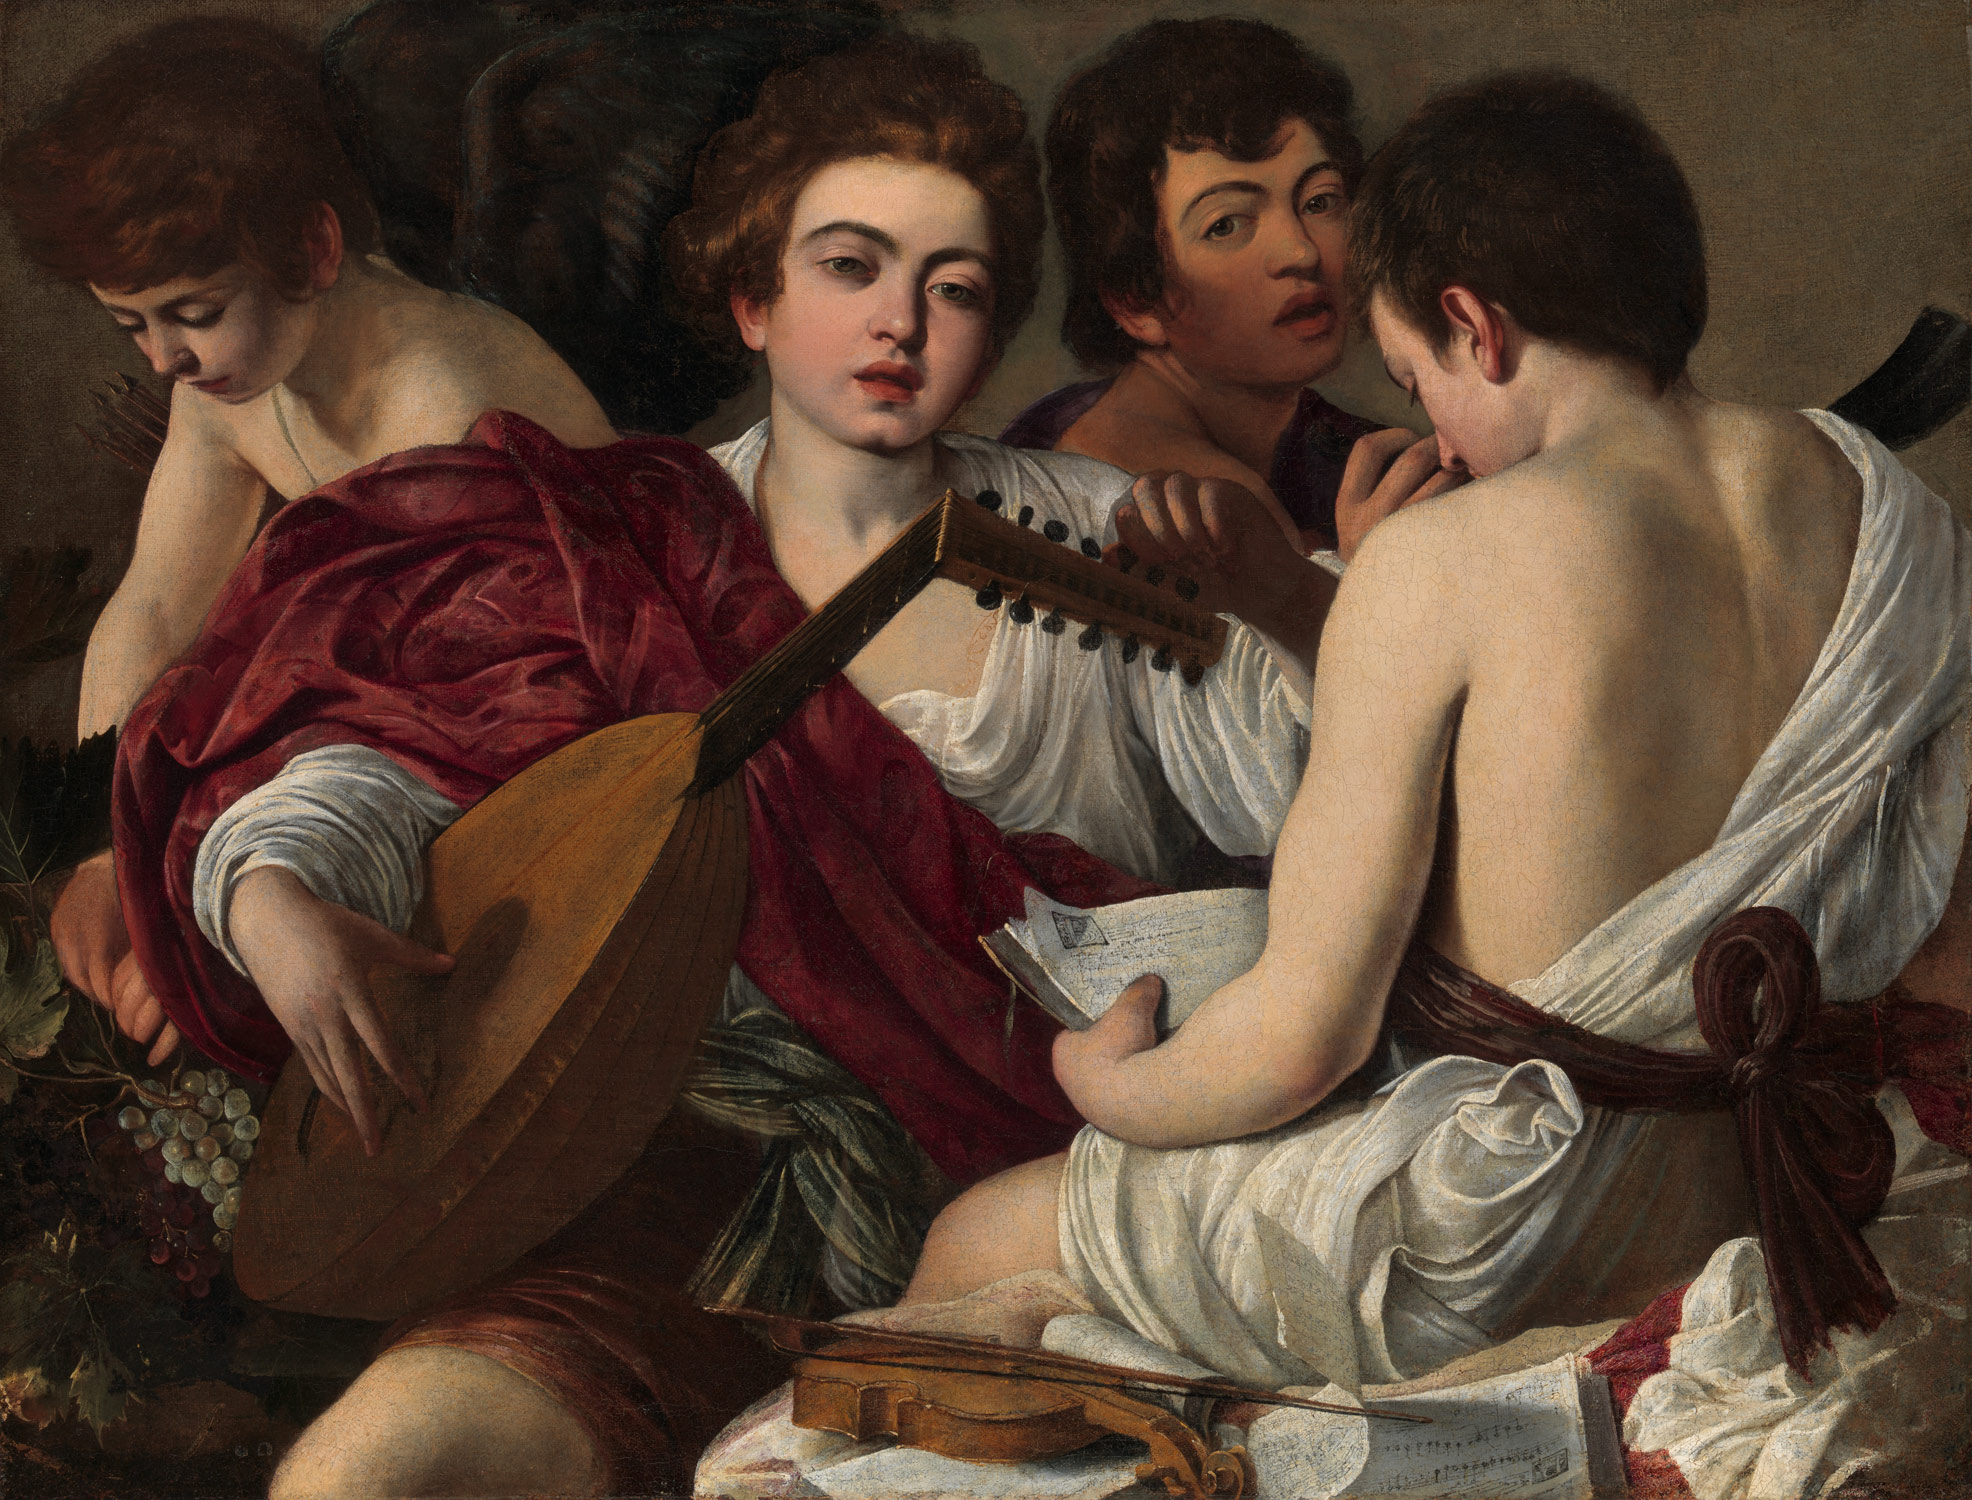 caravaggio michelangelo merisi and his followers the musicians